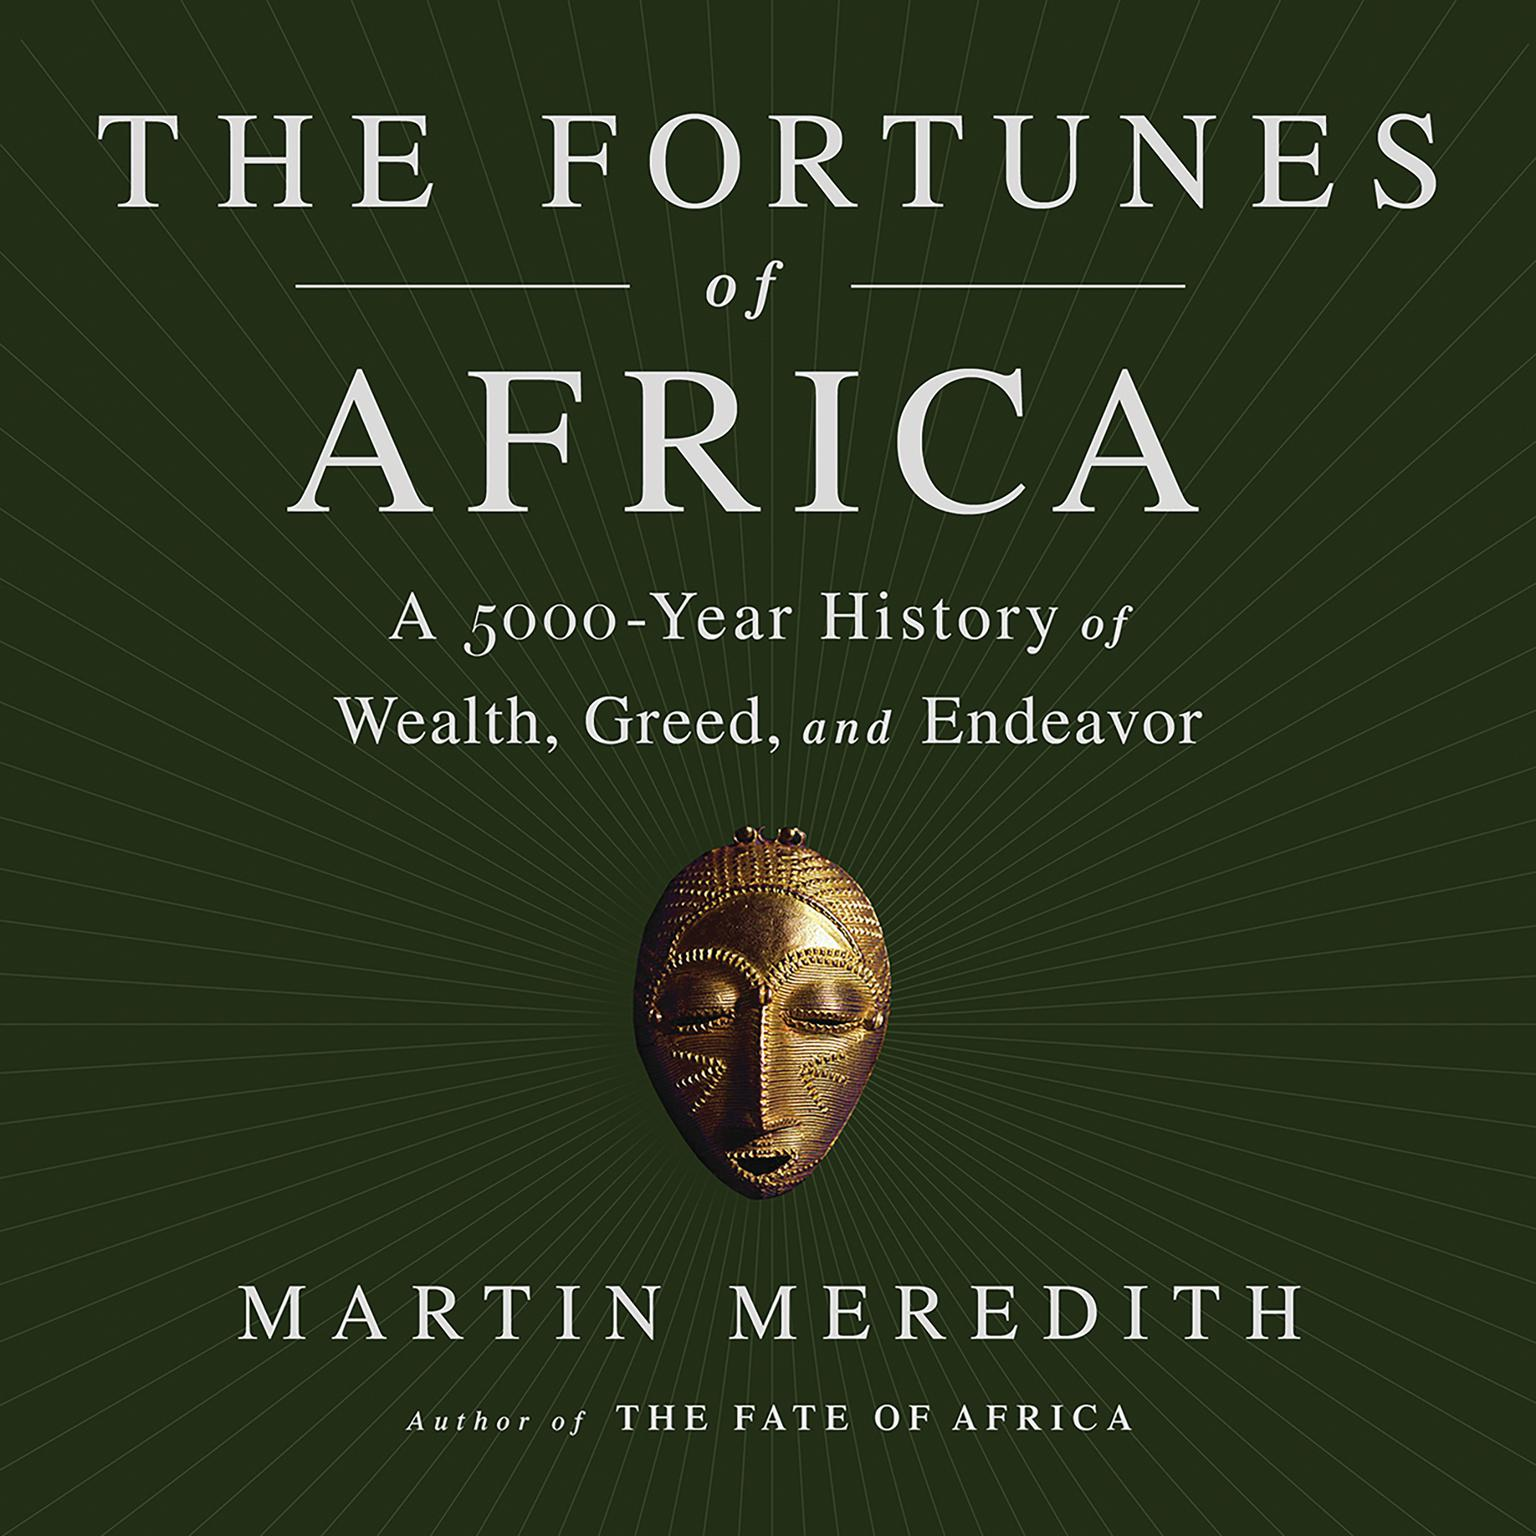 Printable The Fortunes of Africa: A 5000-Year History of Wealth, Greed, and Endeavor Audiobook Cover Art